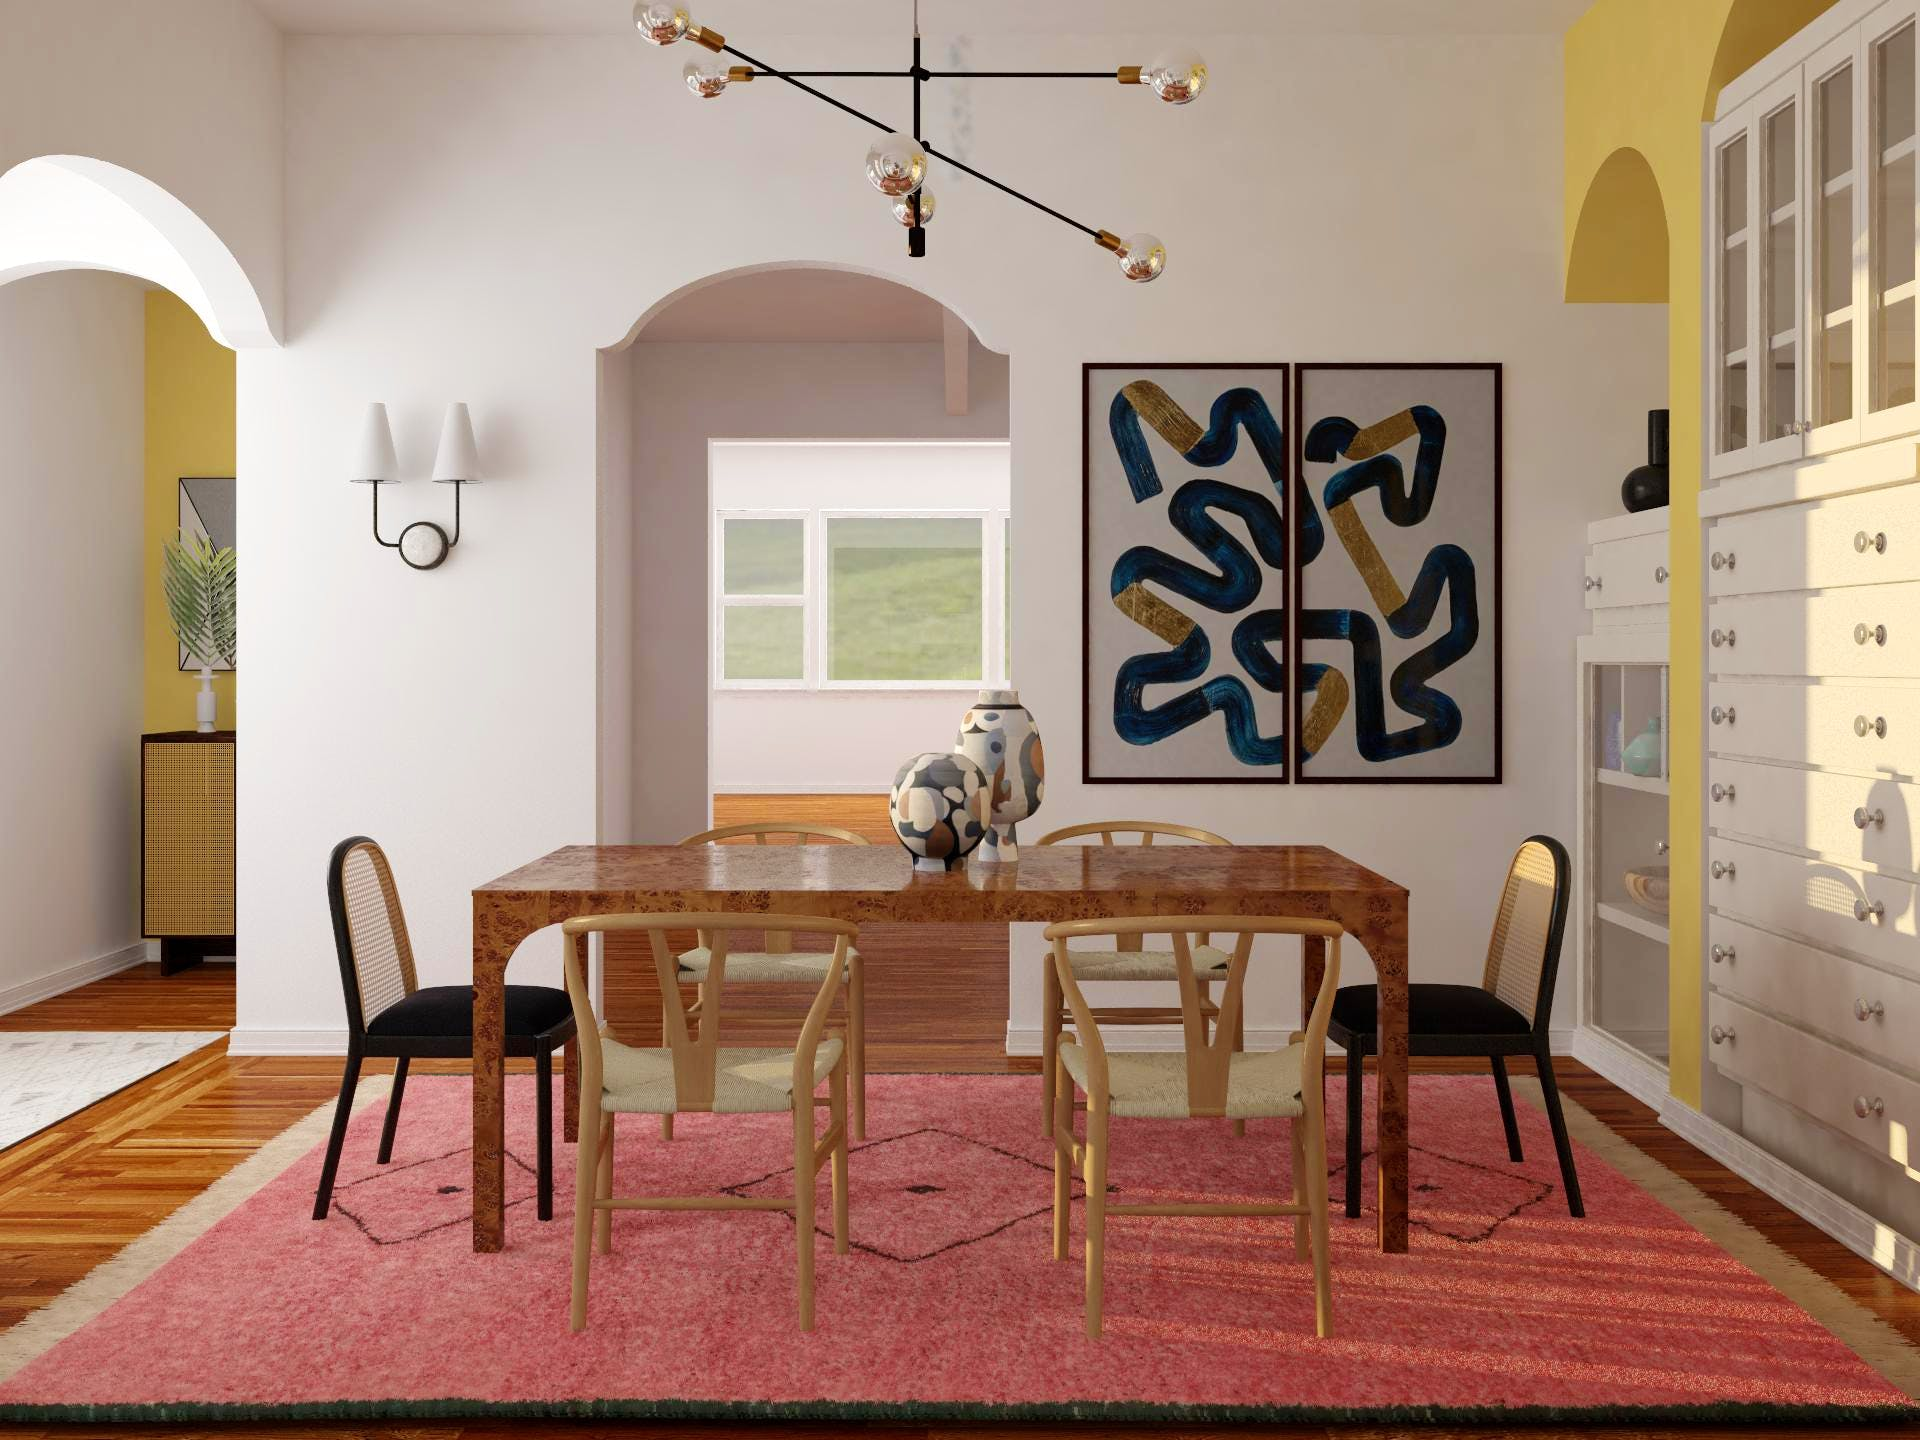 Geometric Shapes Abound in Bold Minimalist-Maximalist Dining Room